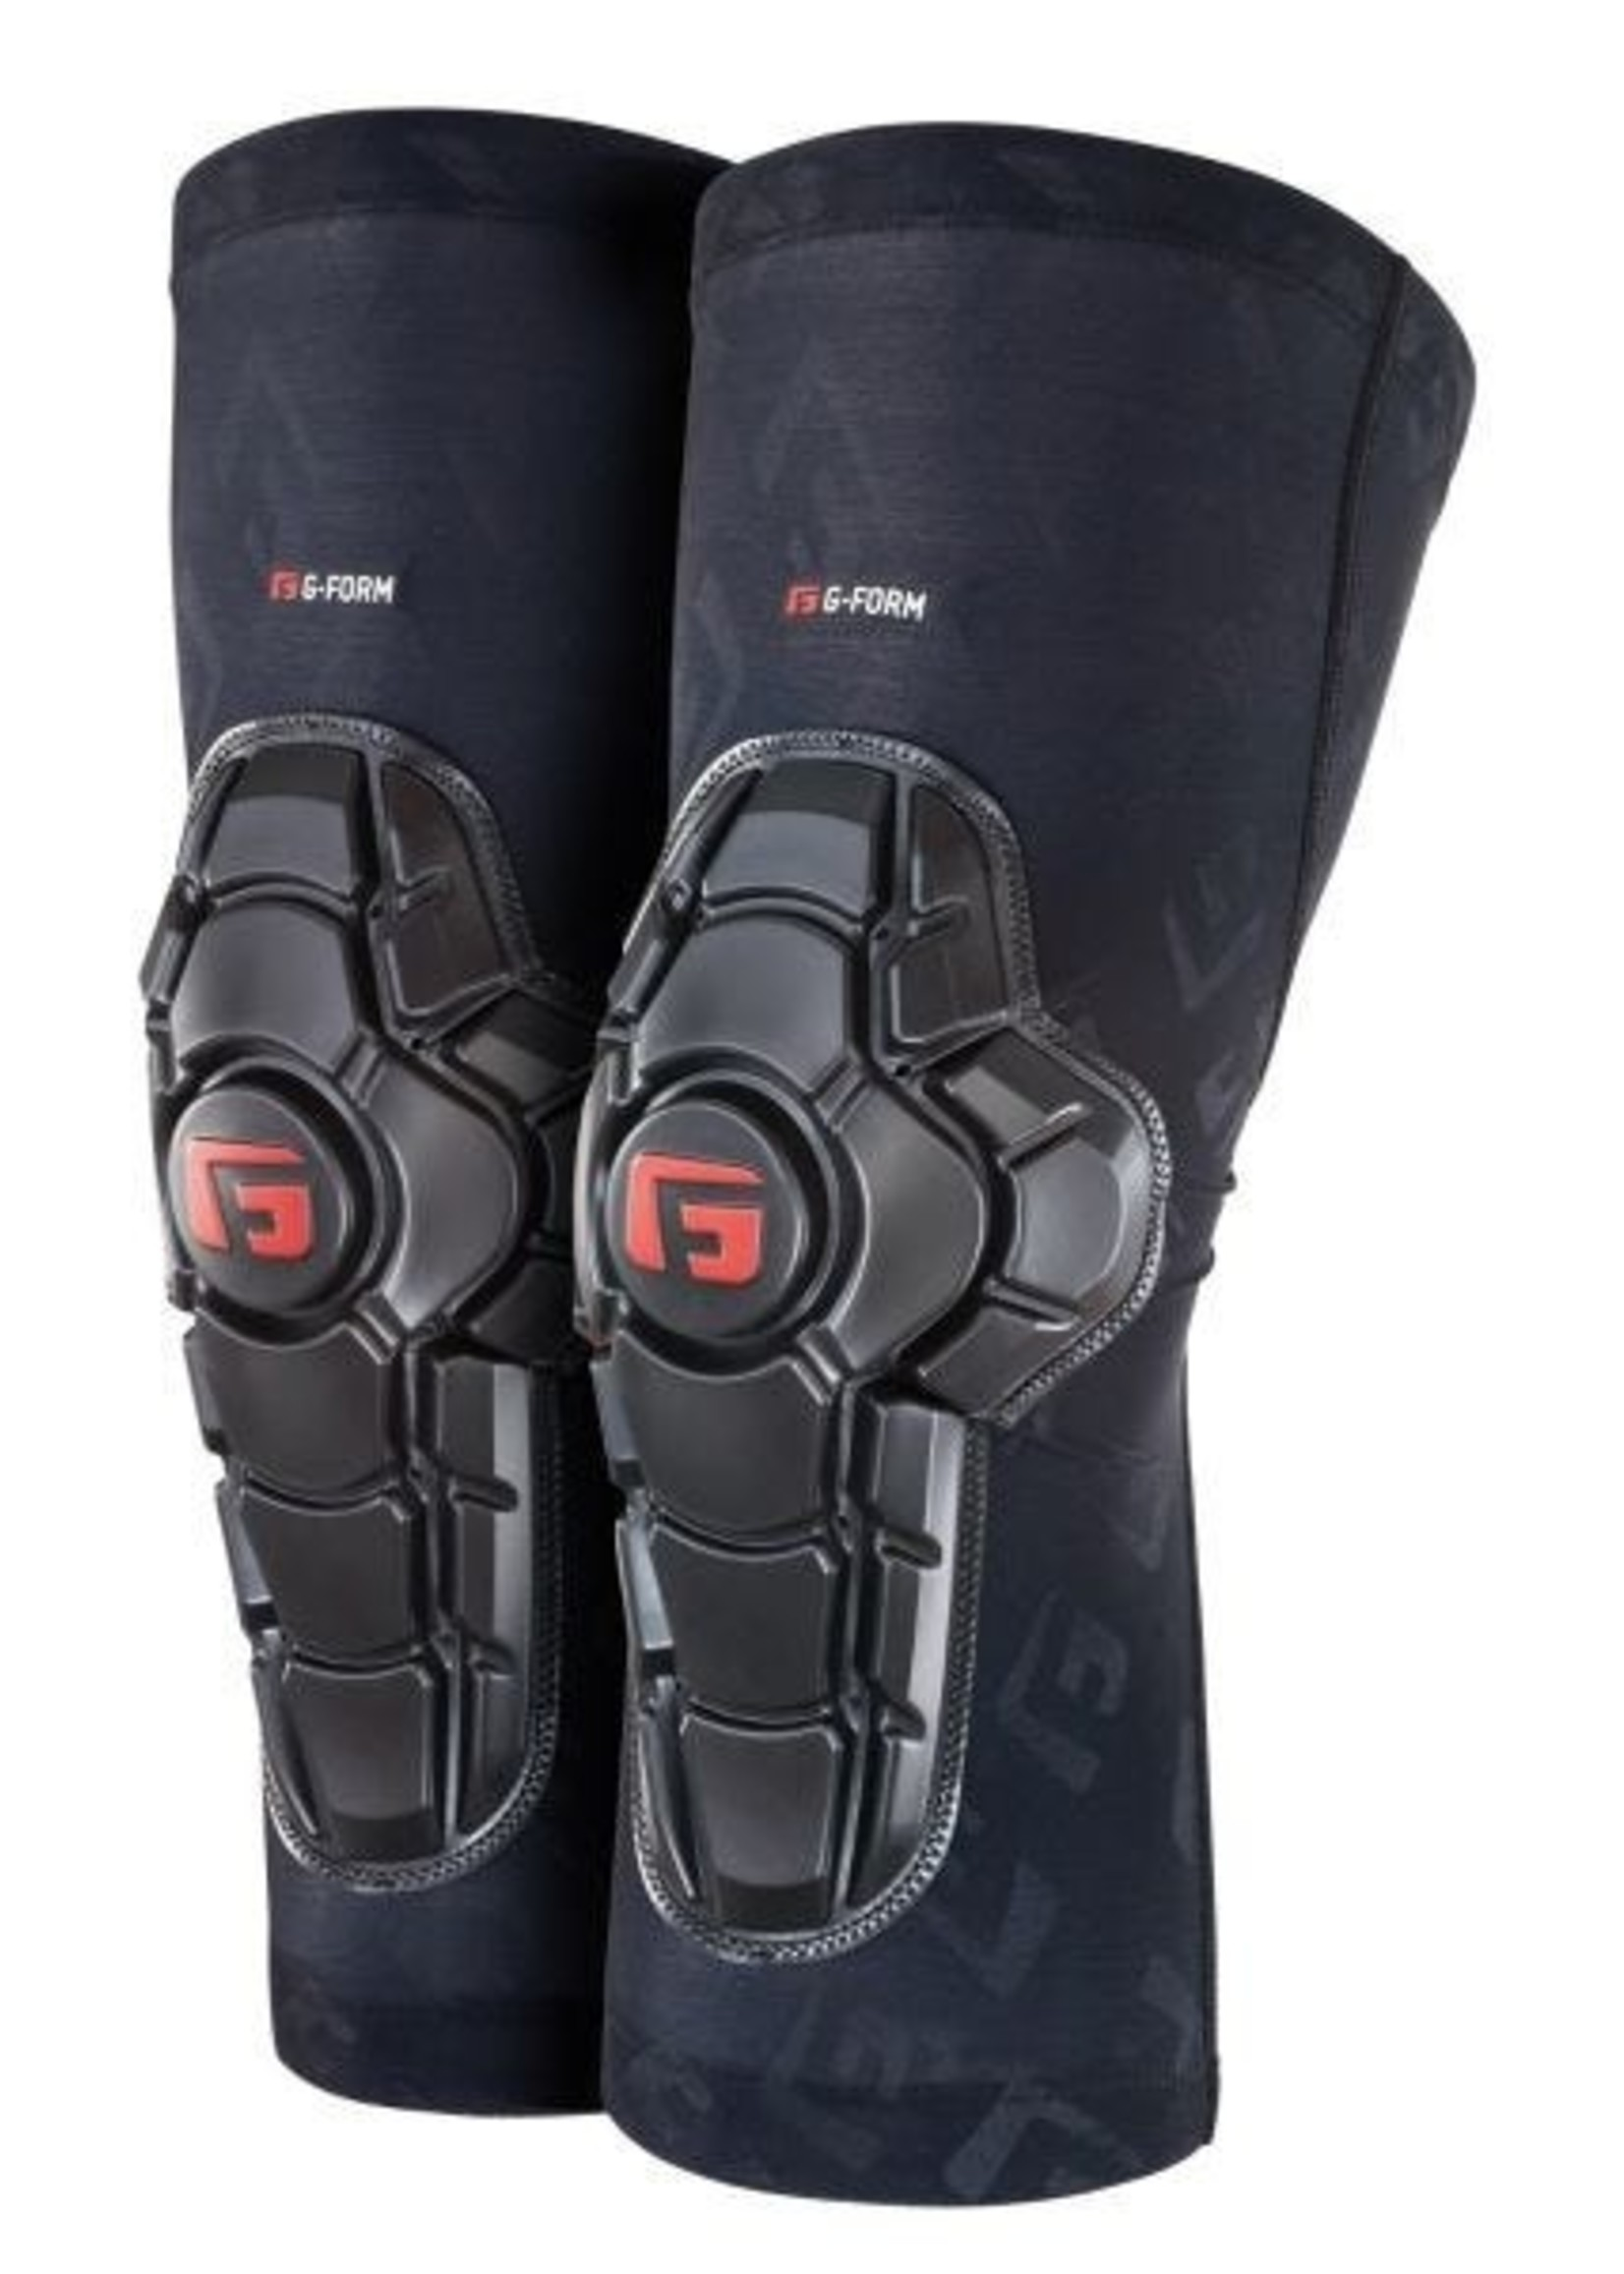 G-Form Safety G-Form Pro-X2 Youth Knee Small/Medium